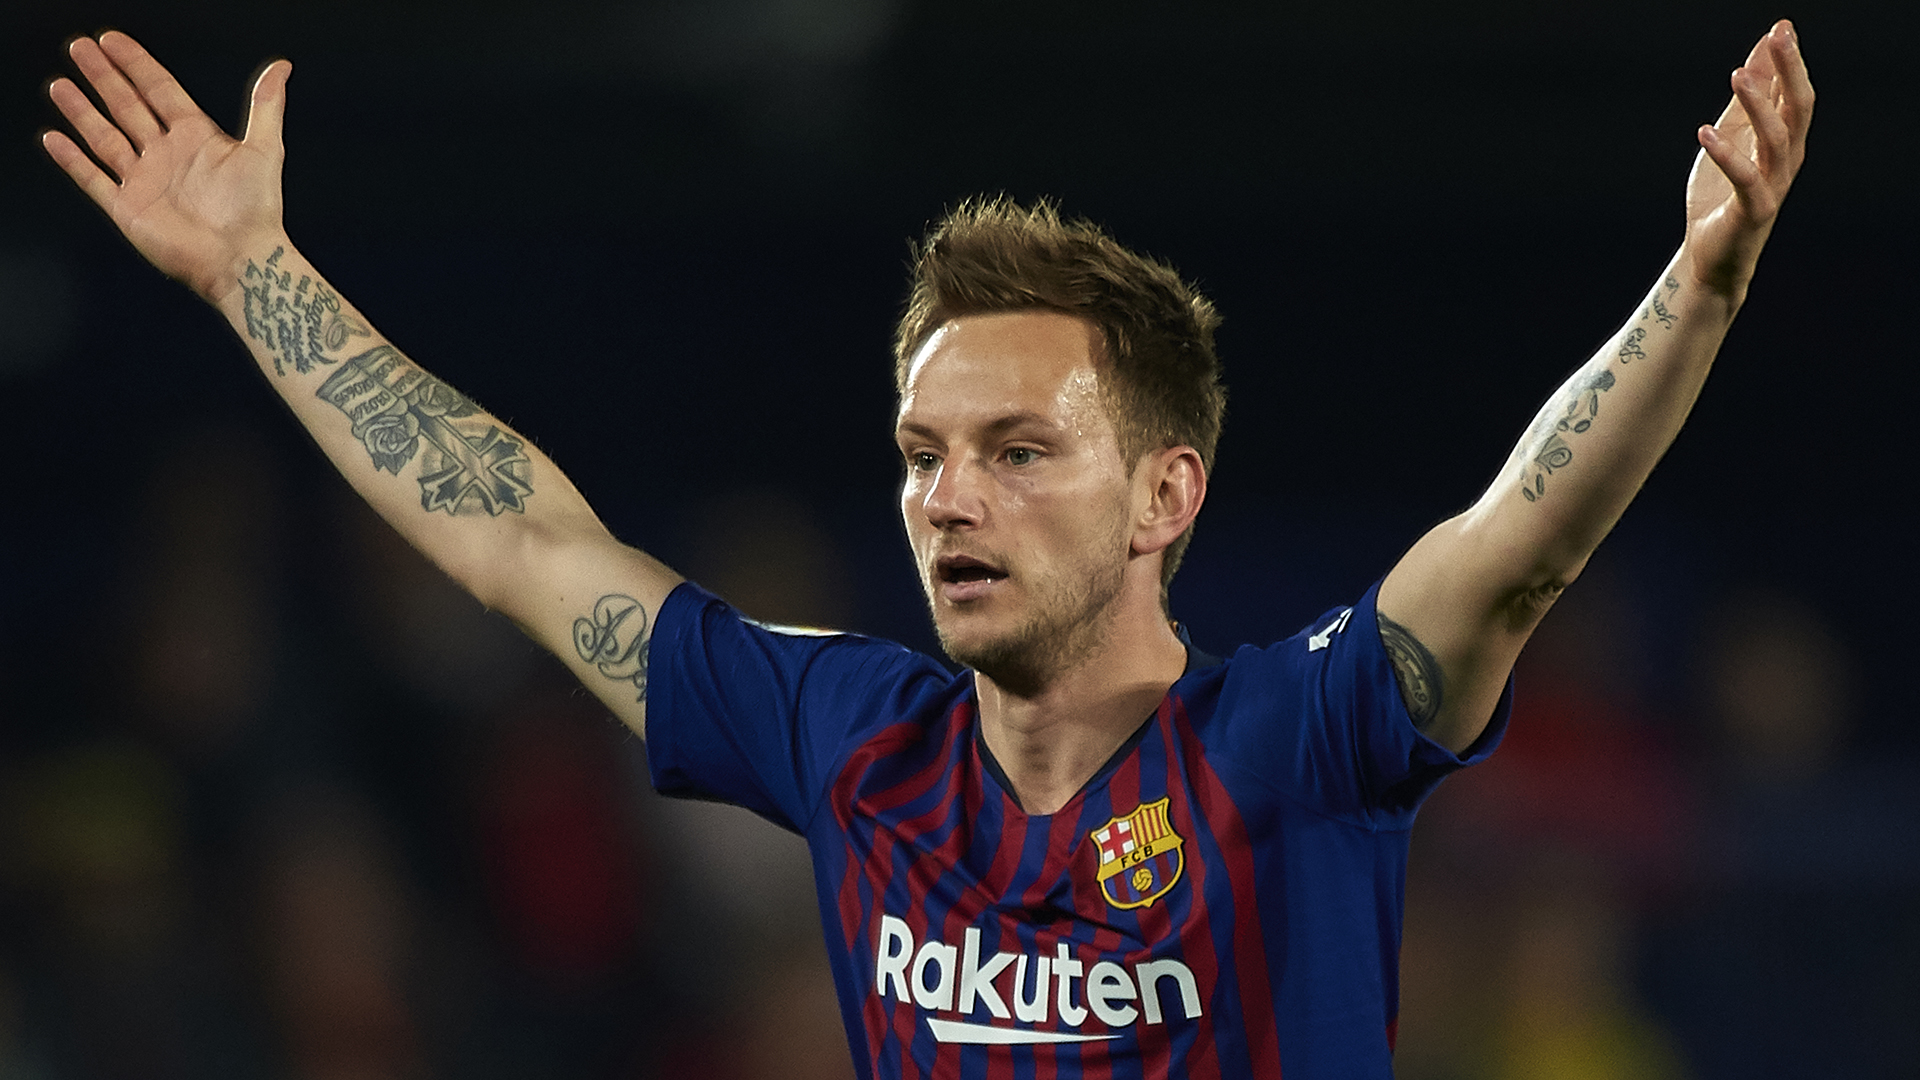 LaLiga: Ivan Rakitic takes final decision on future with Barcelona